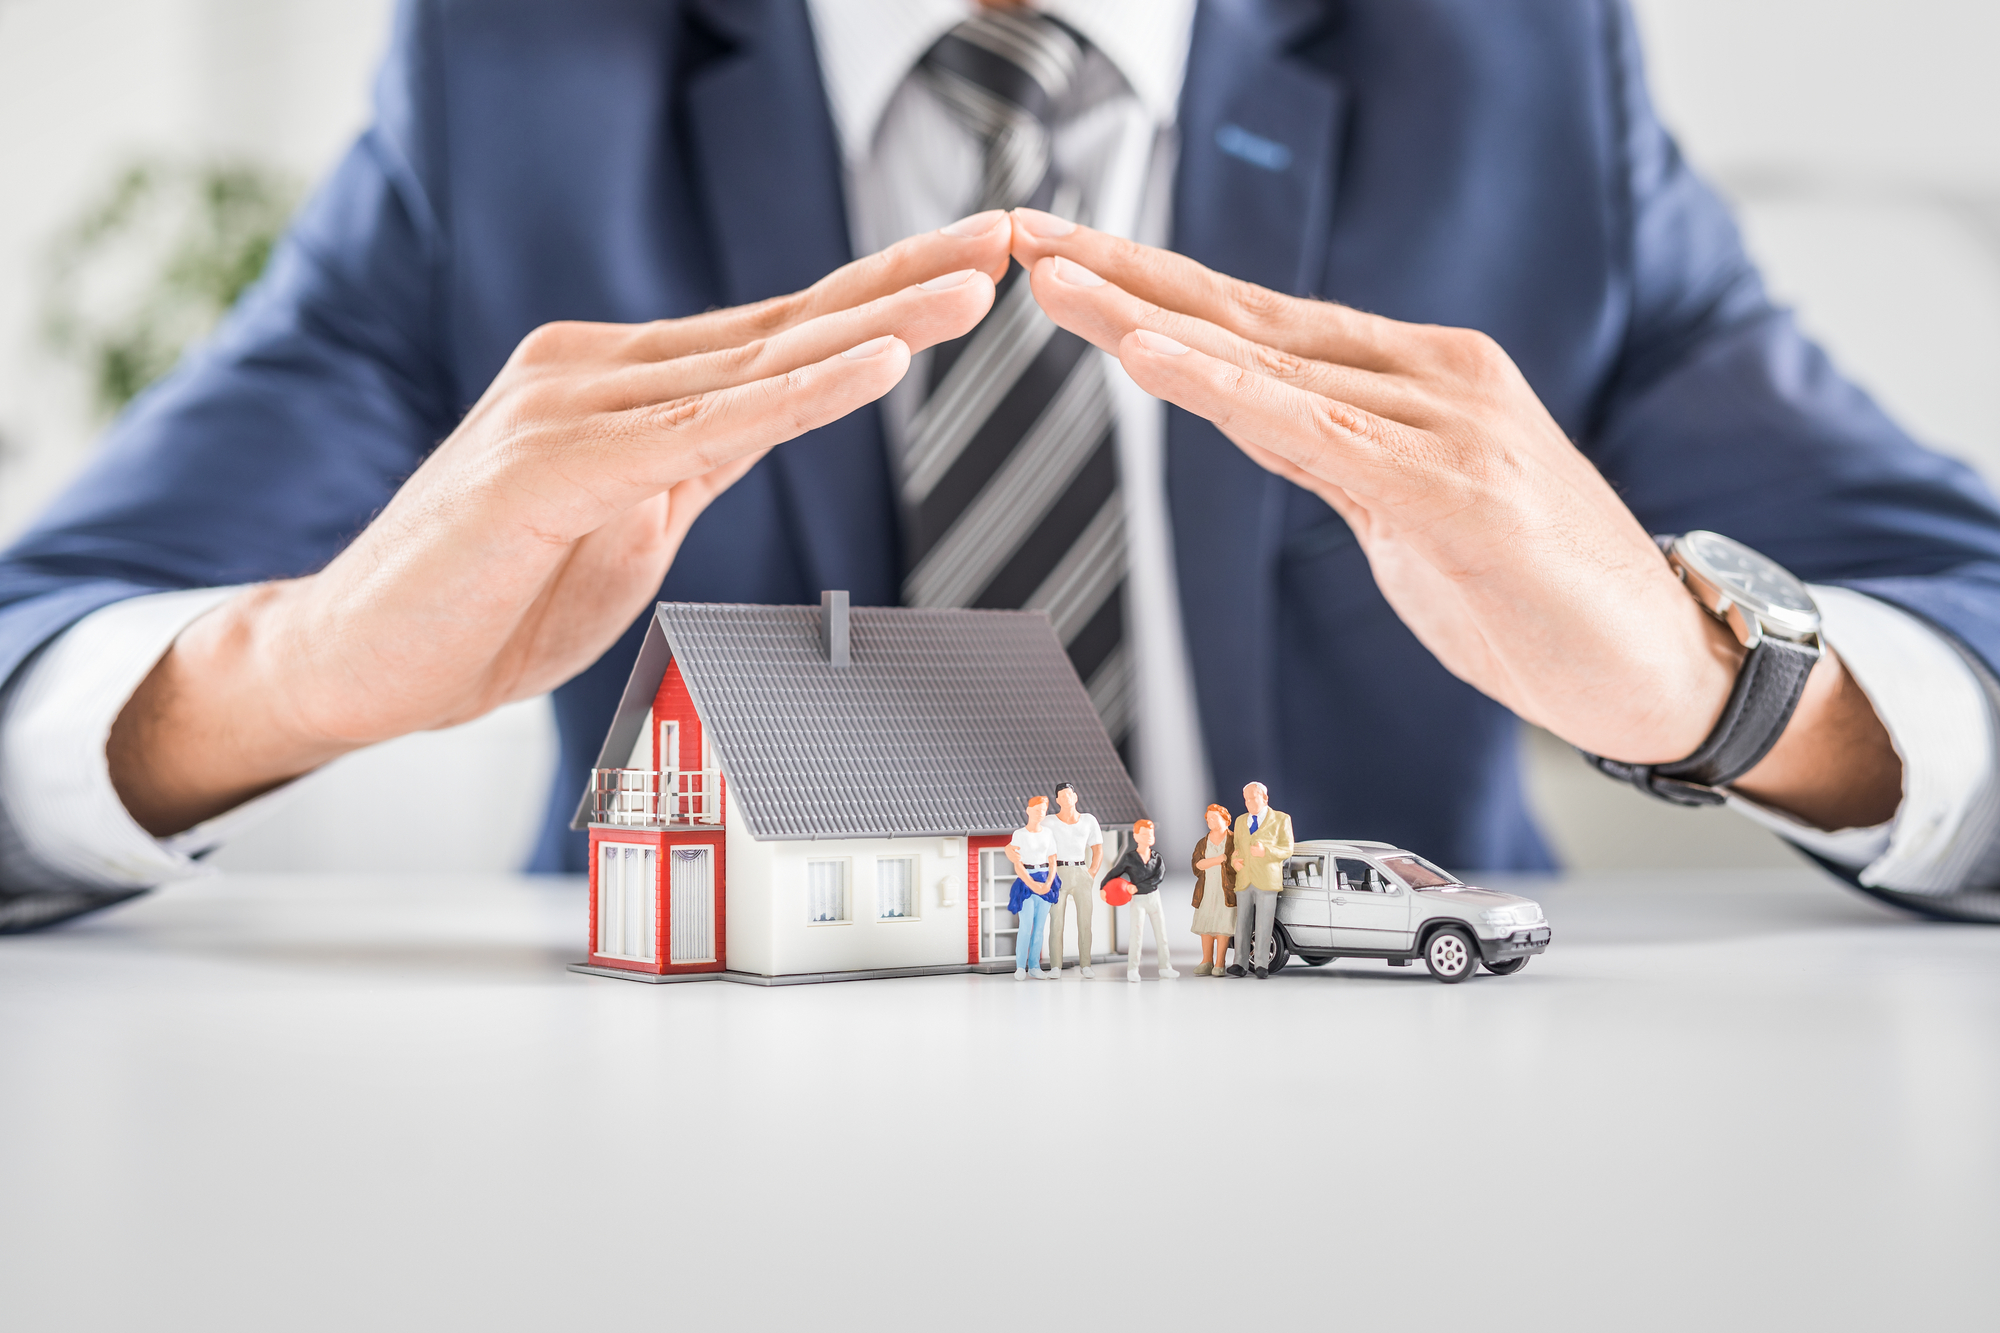 Insurance agent with house toy, safety insurance concept